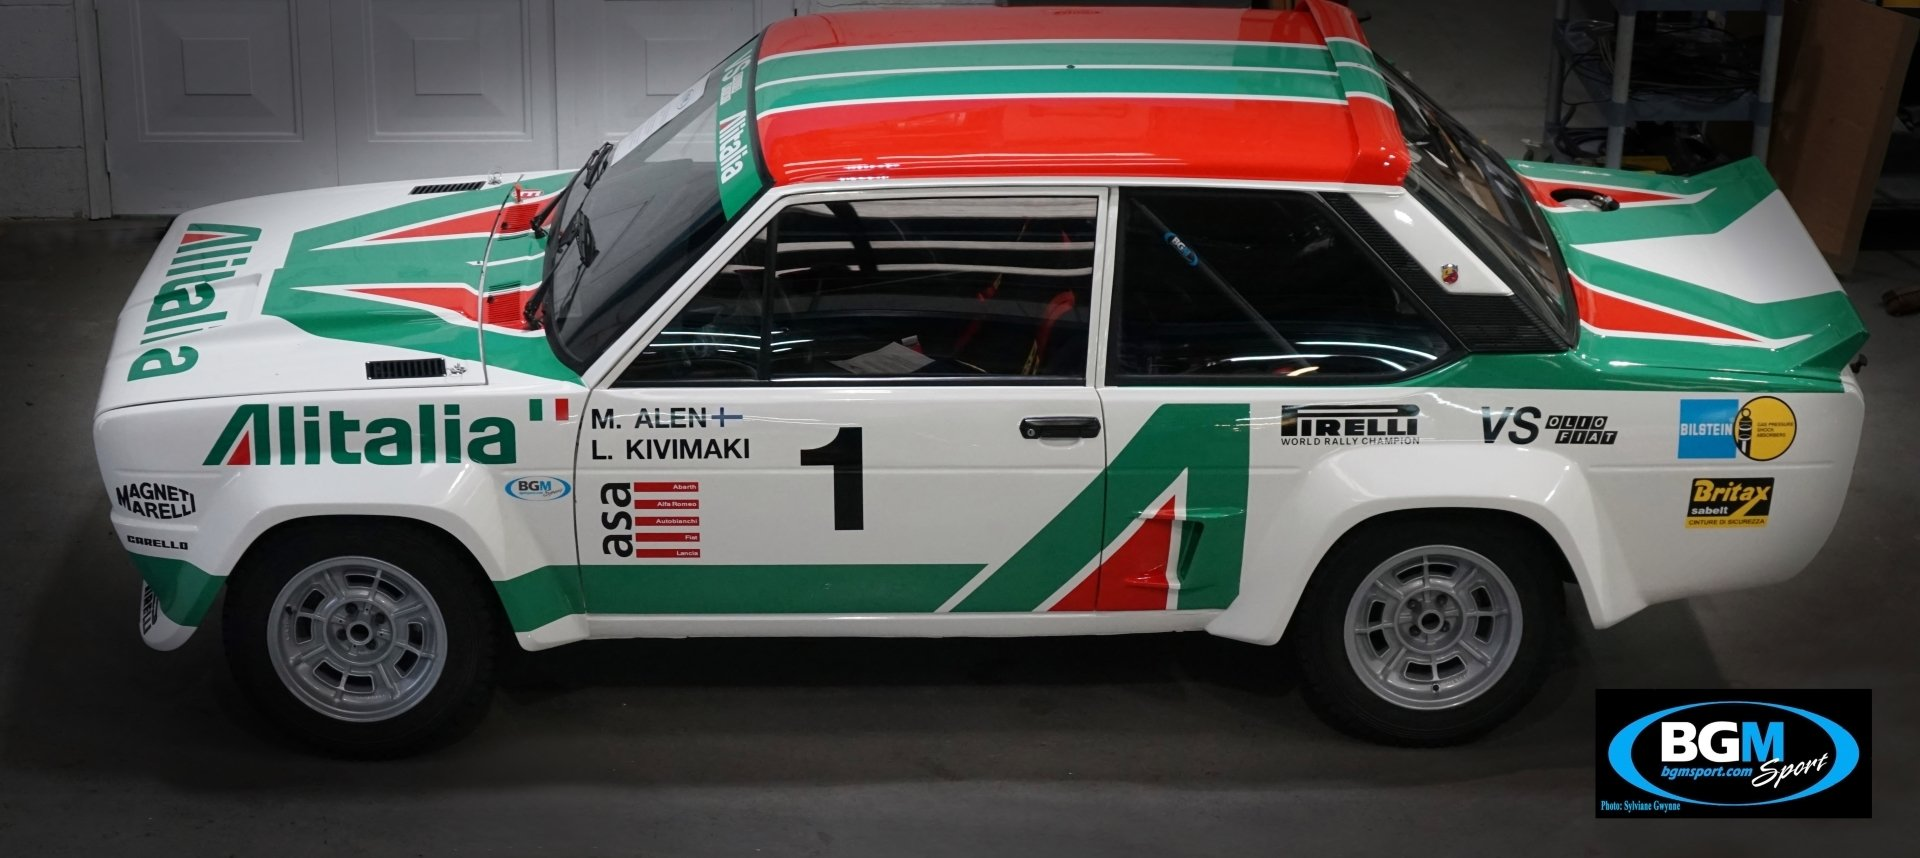 fiat-131-abarth-grp-4-rally-car-33